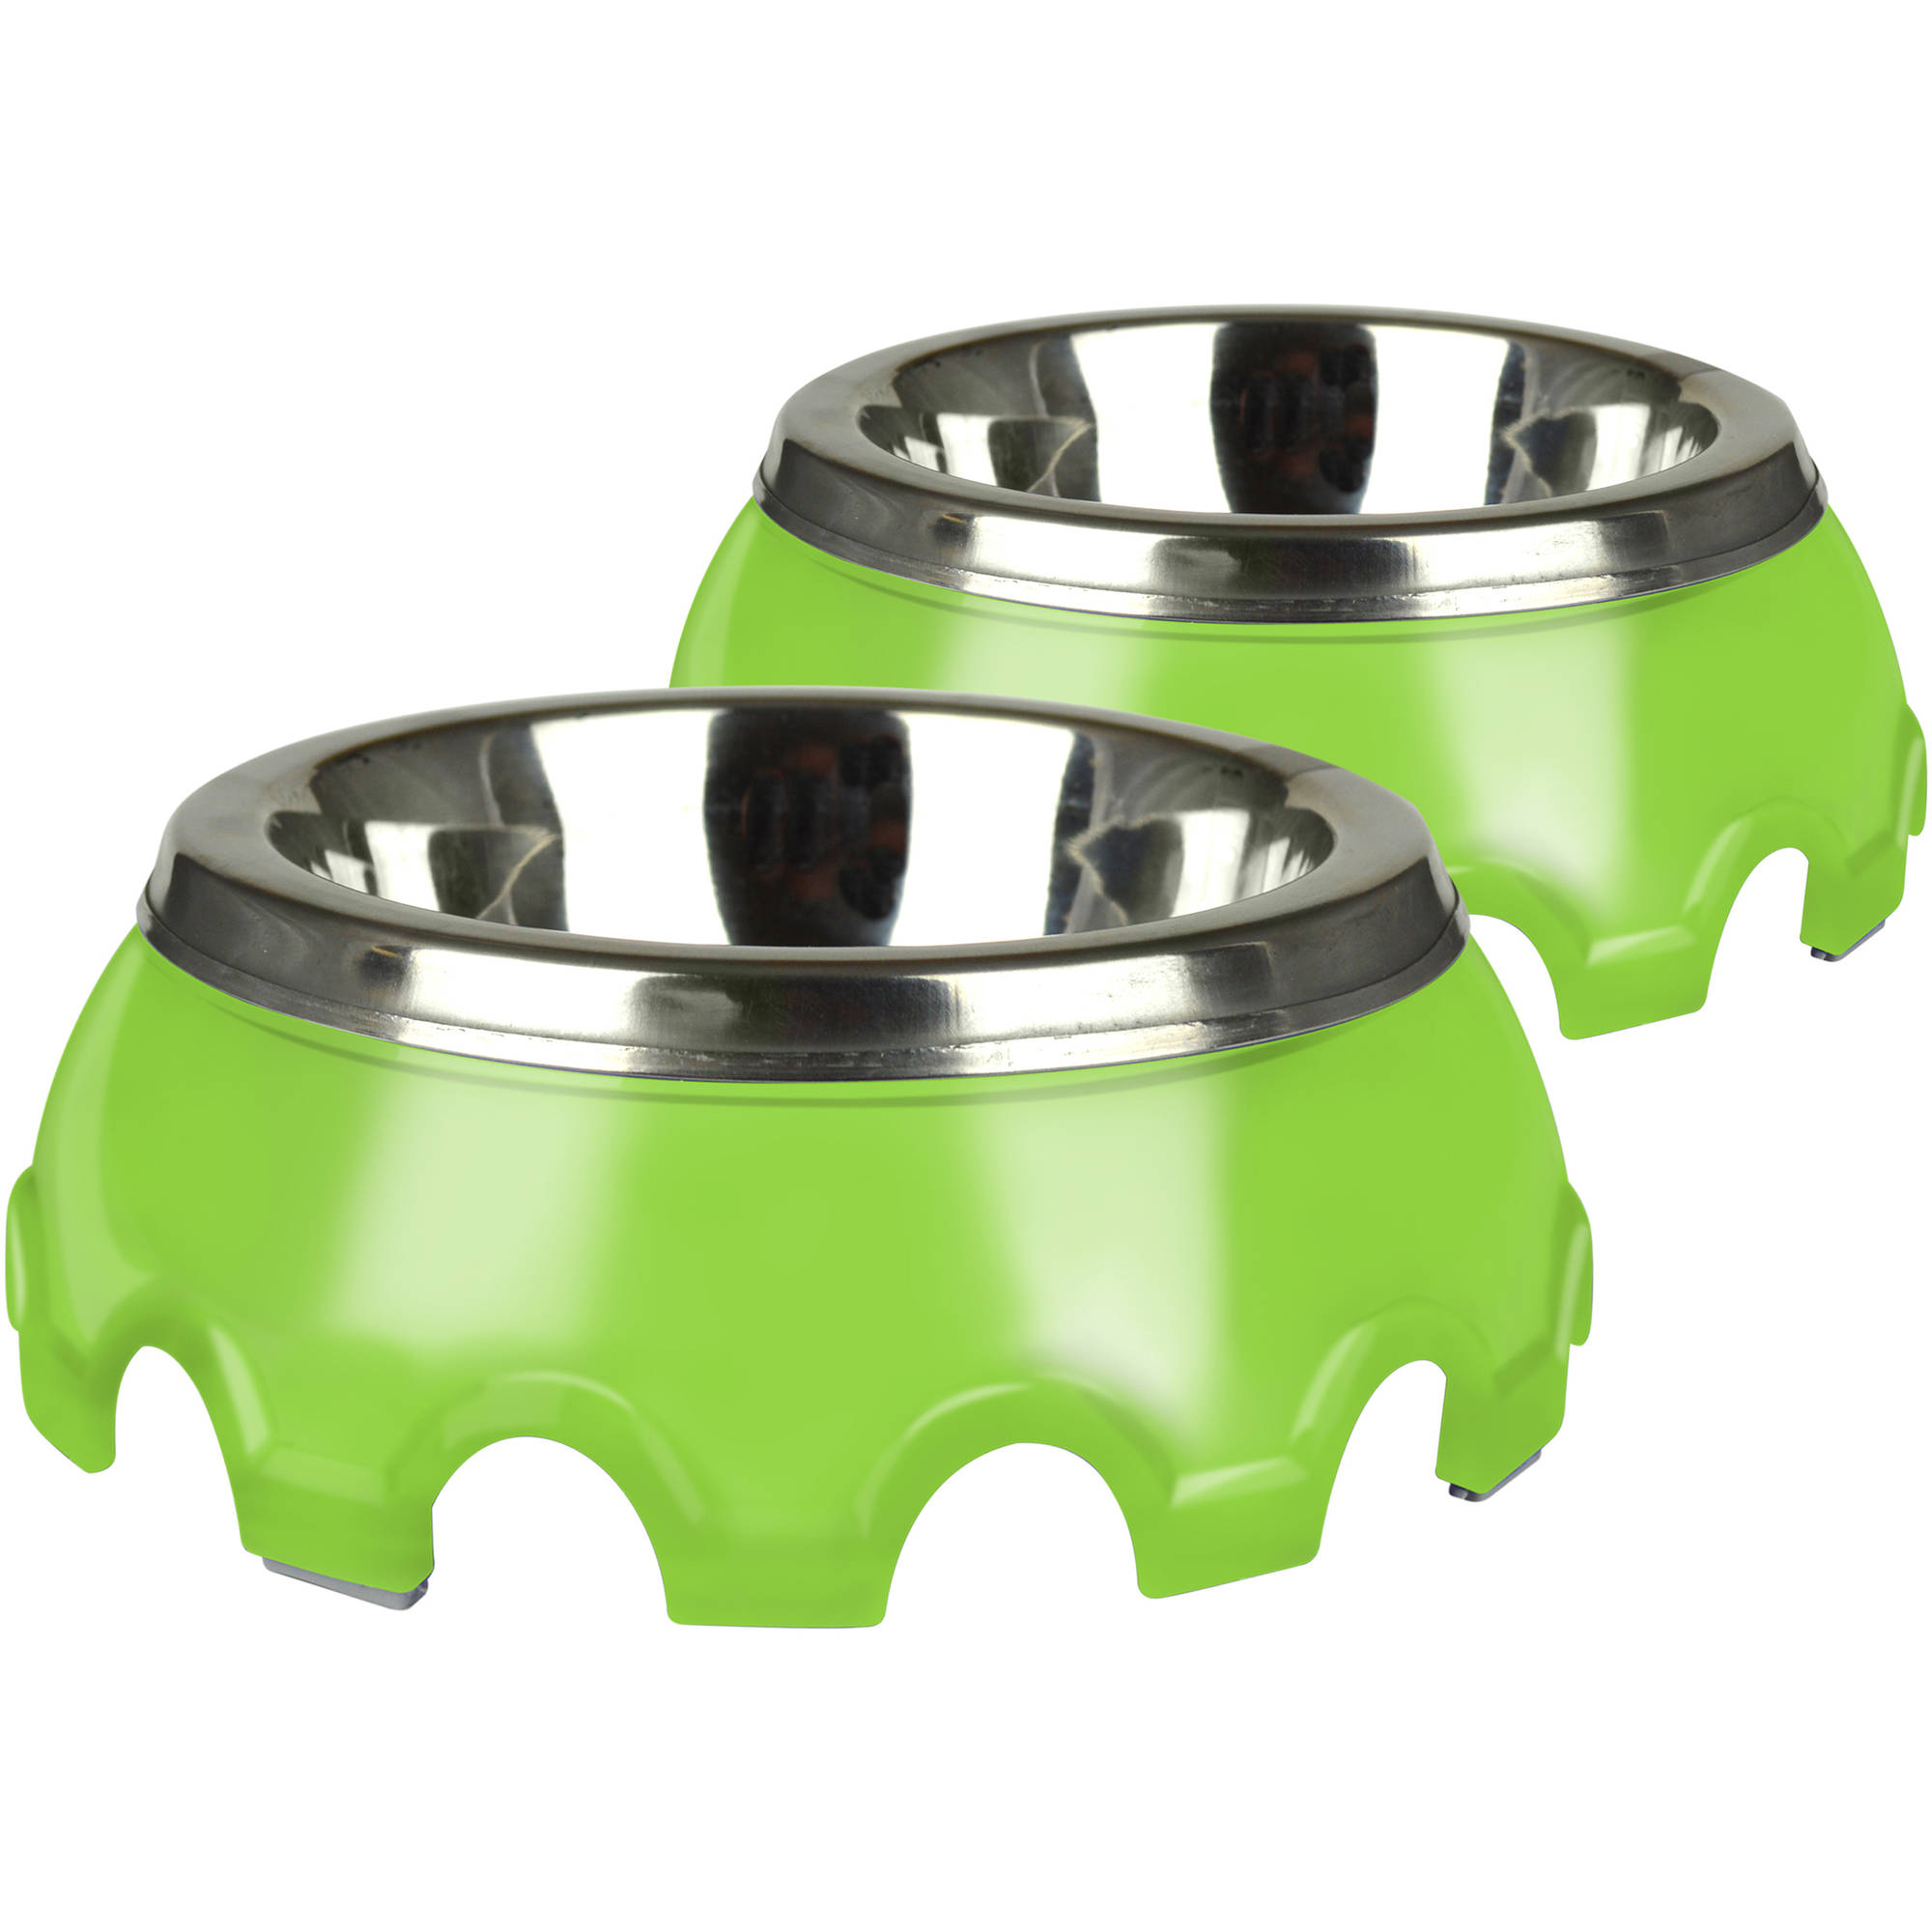 Pet Zone Festiva Pet Bowls, Small (1 Cup), Green, 2-Pack